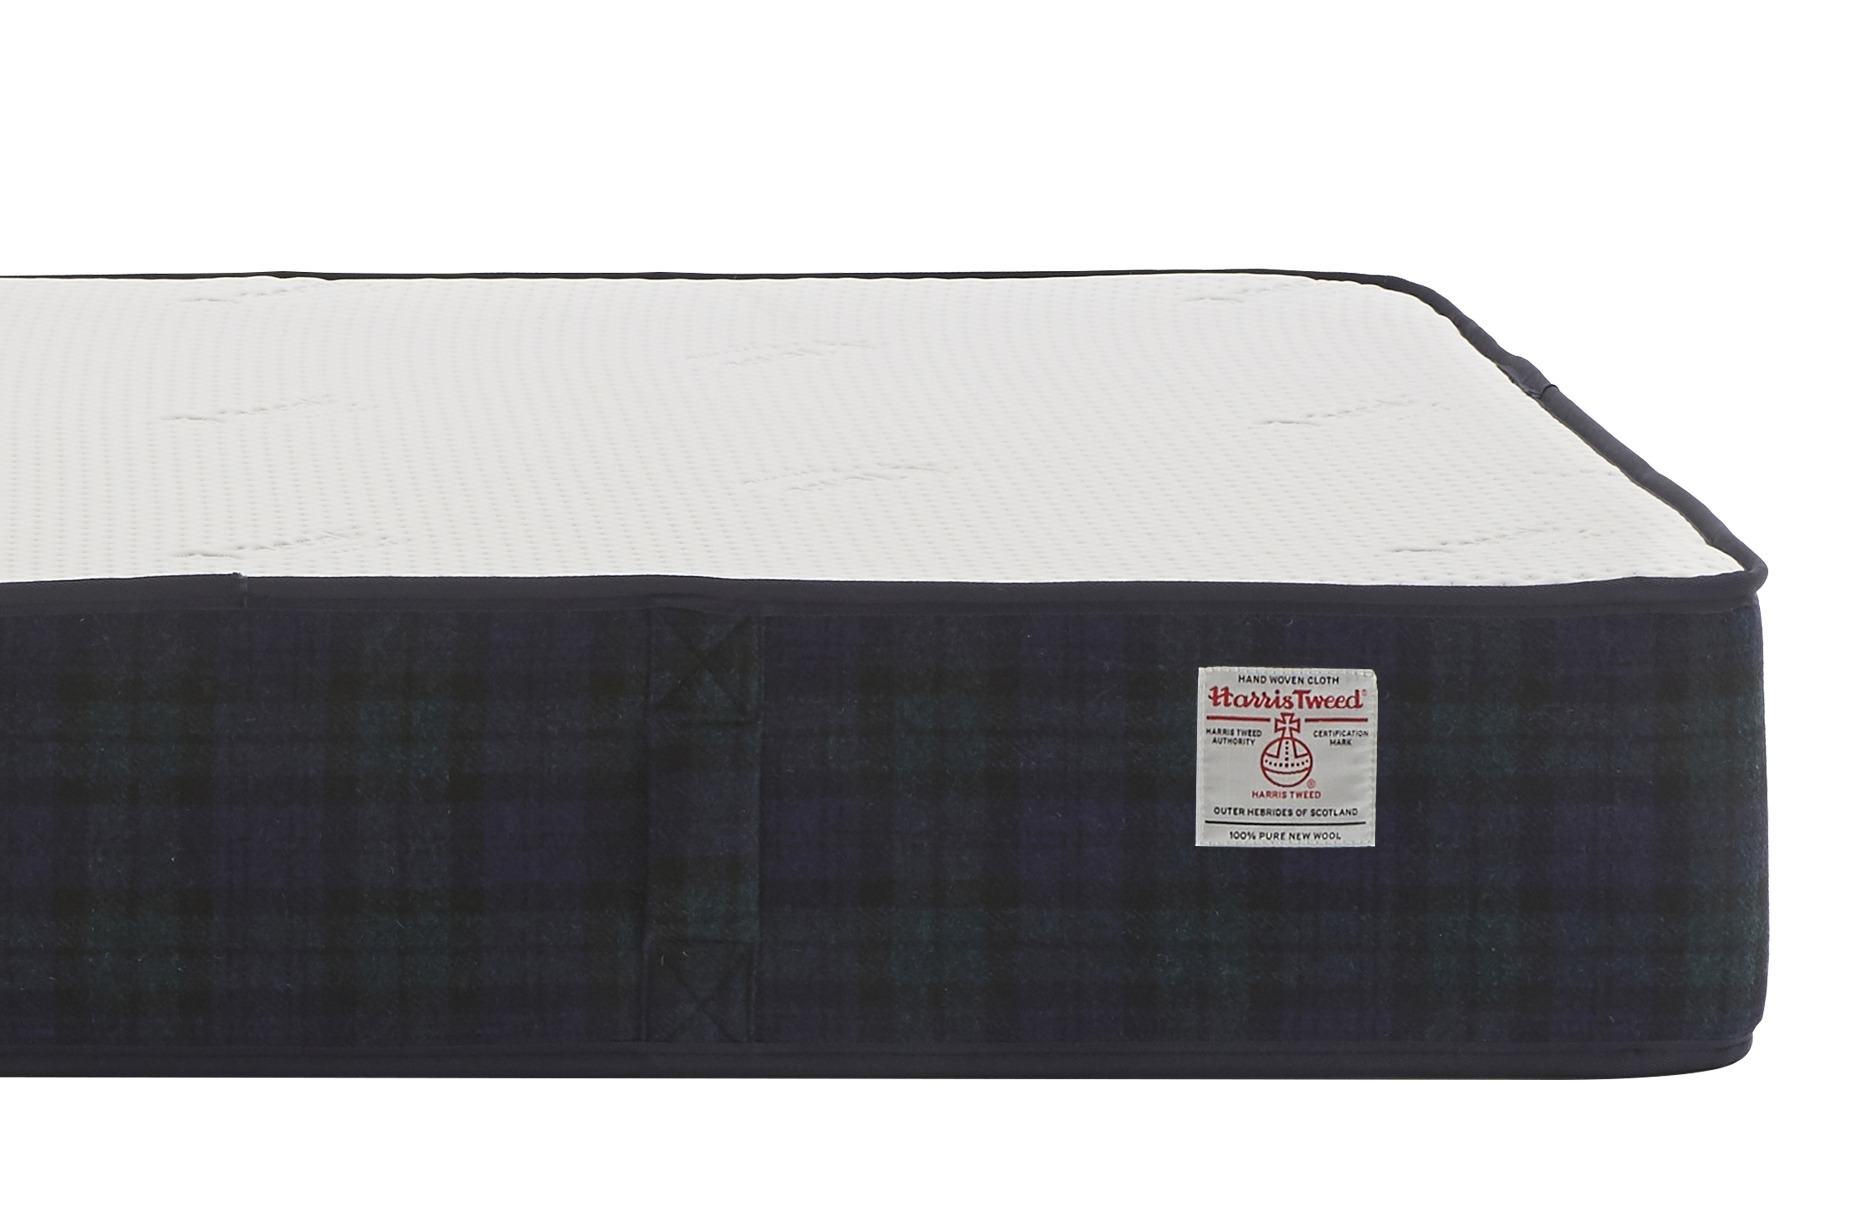 (주)도이치   FINBED by doich  ® 326 Harris Tweed mattress  / 두께 26cm  텐션:미디움